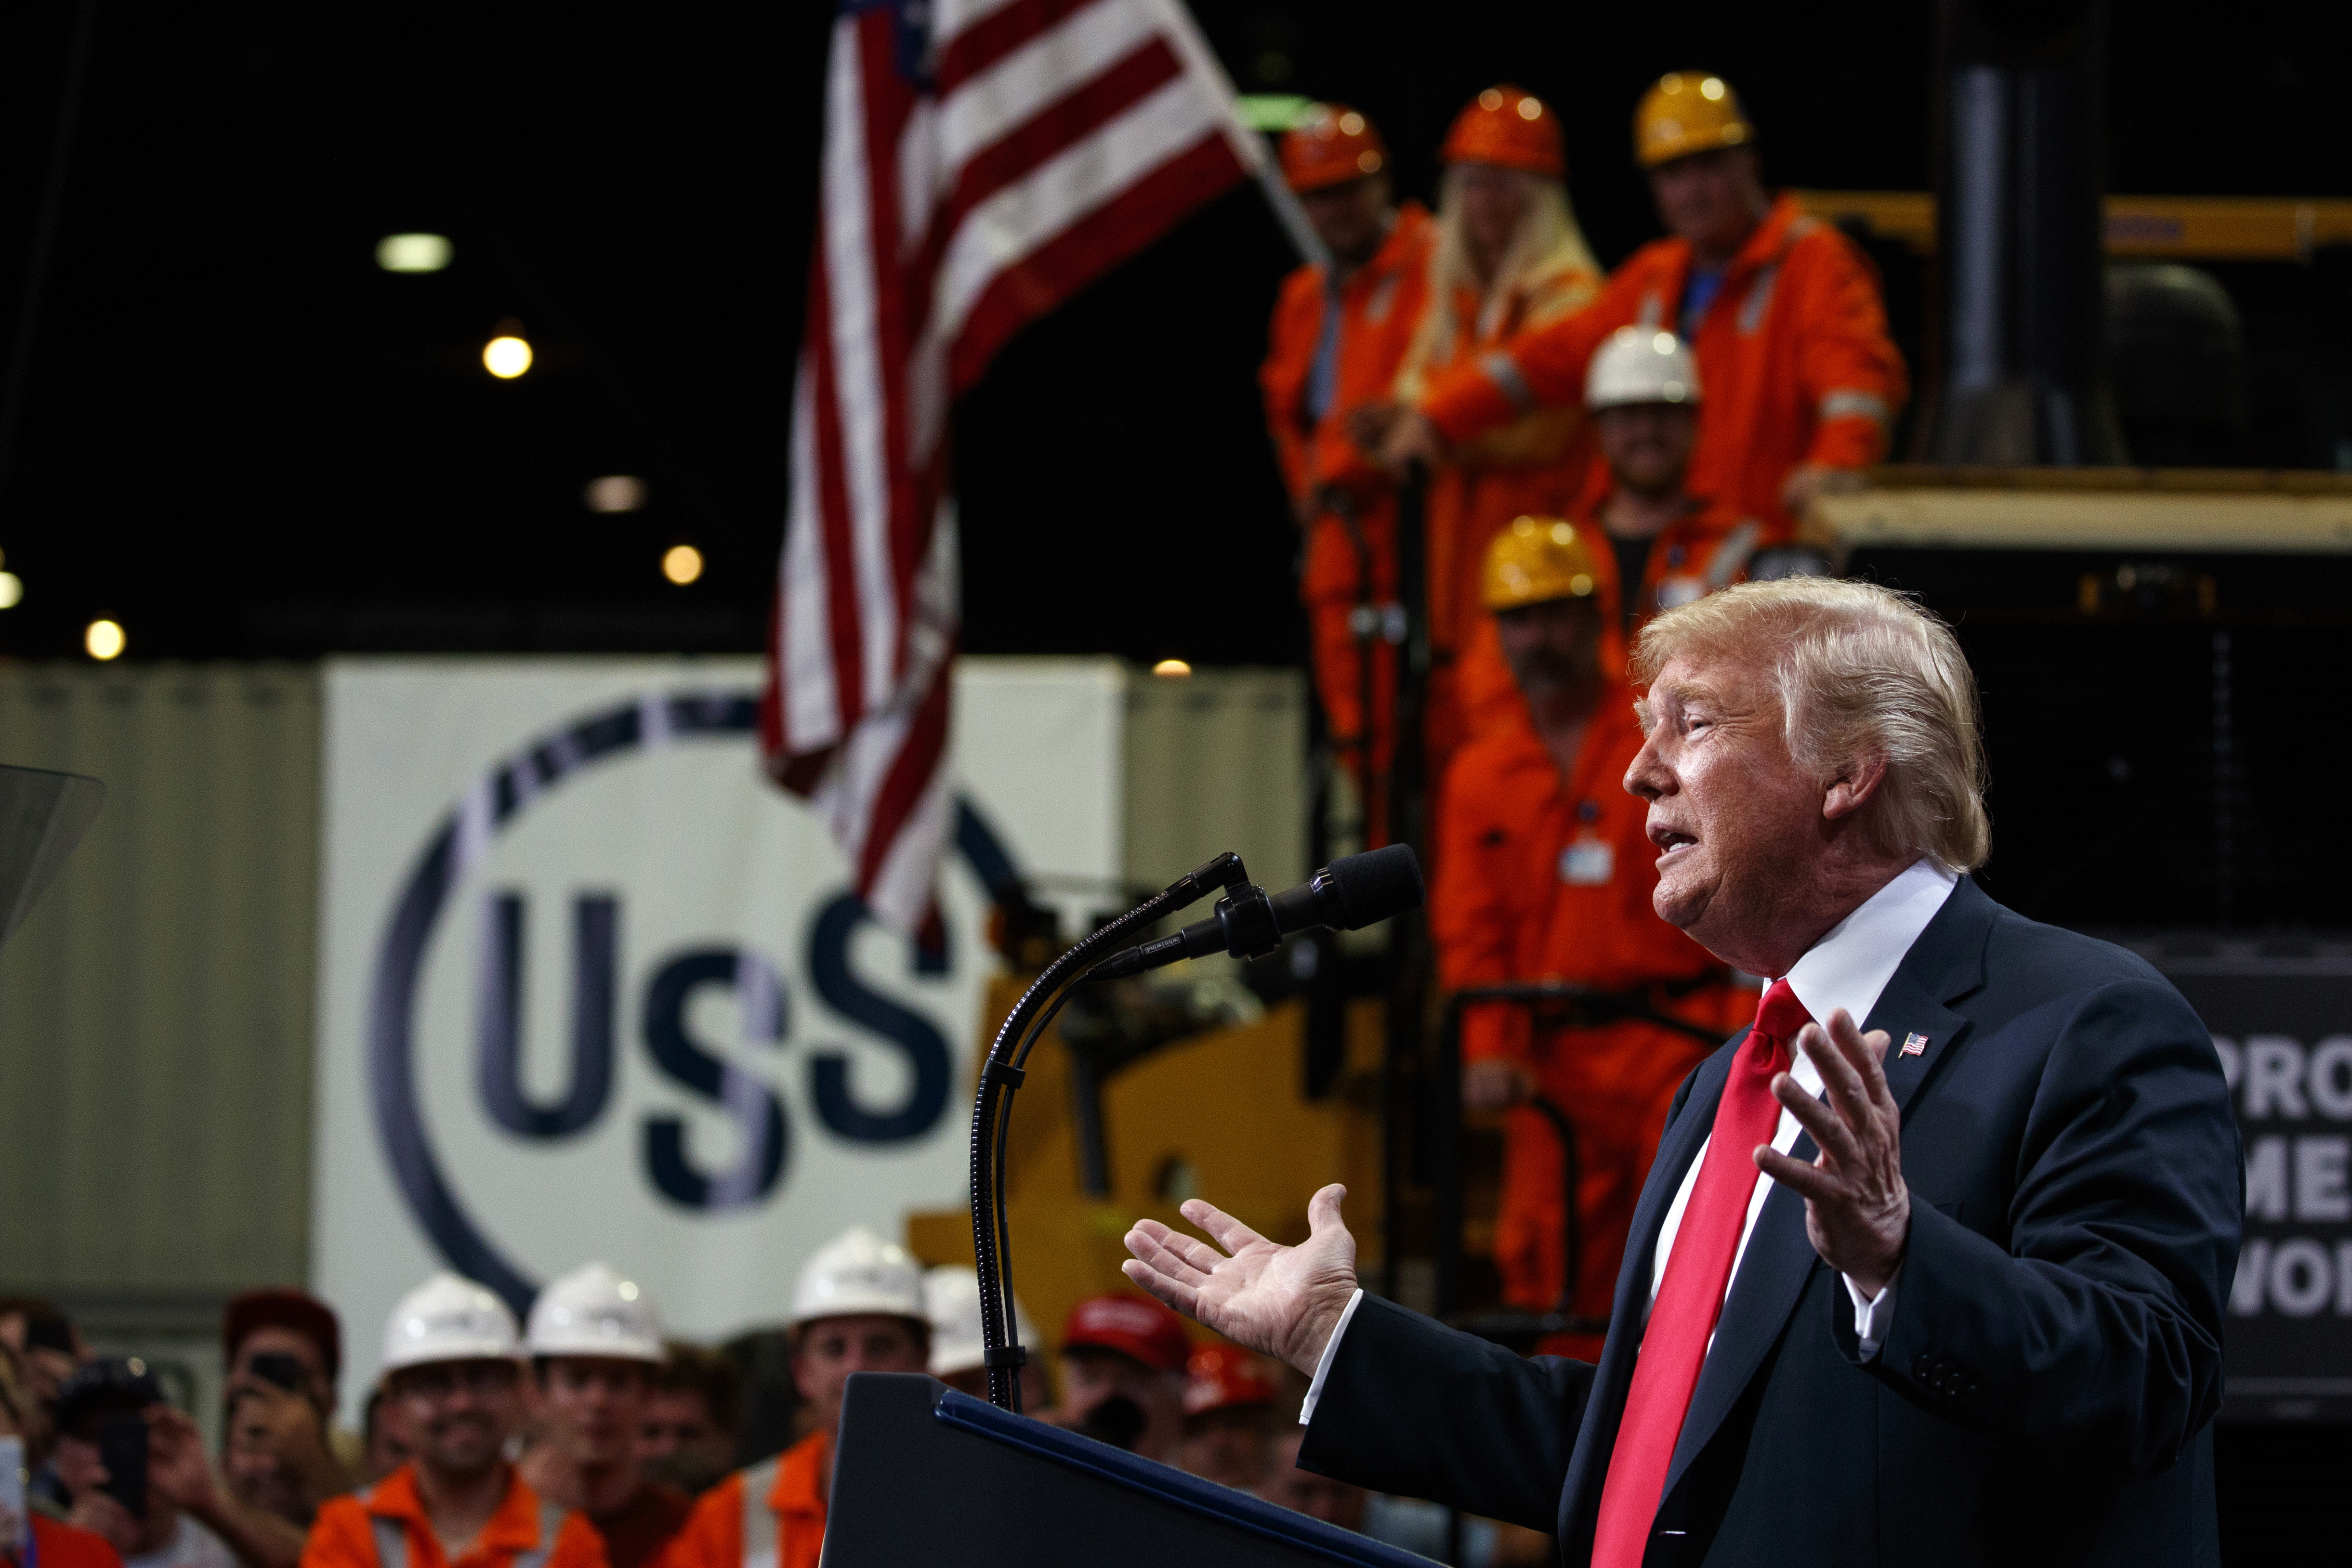 Trump predicts a 'terrific' GDP report at US Steel plant